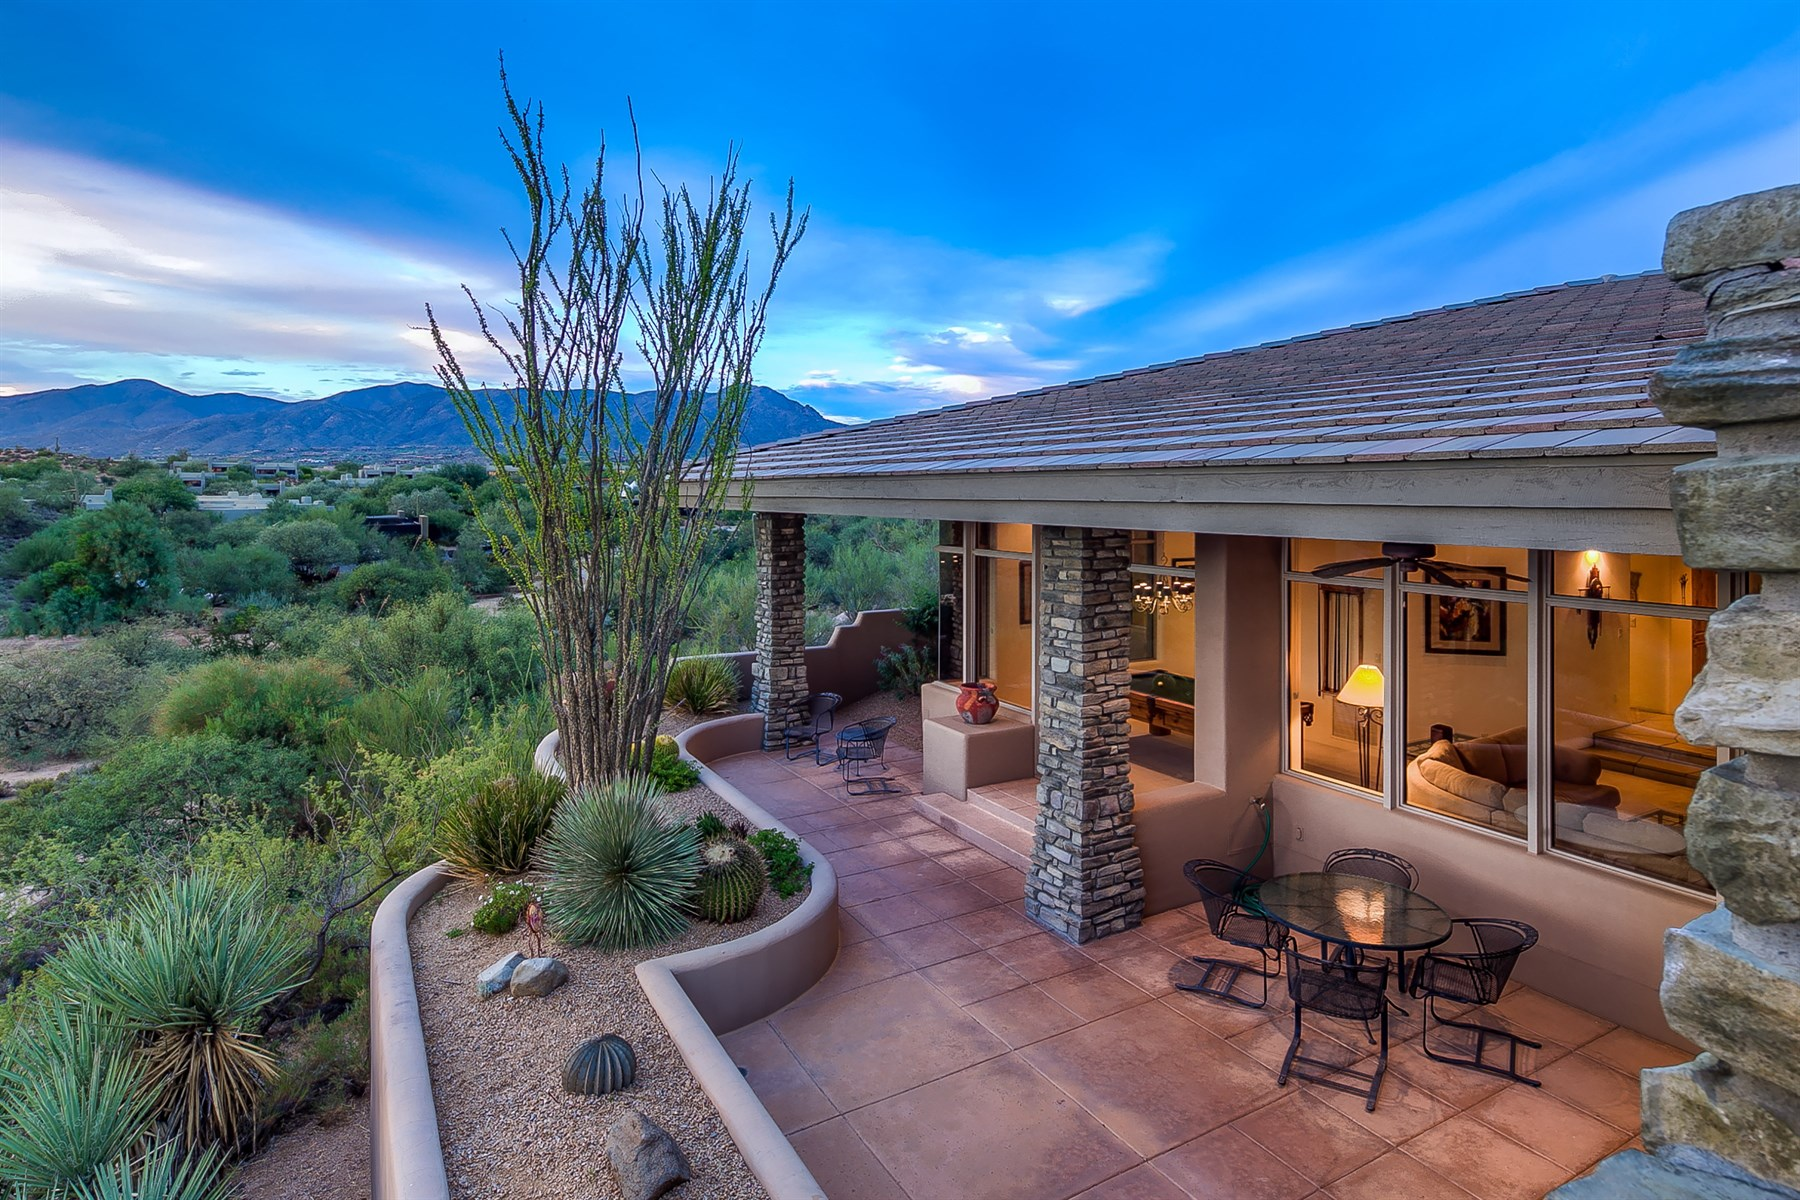 一戸建て のために 売買 アット One of the best locations and views in Sonoran Ridge 10036 E Old Trail Rd Scottsdale, アリゾナ, 85262 アメリカ合衆国